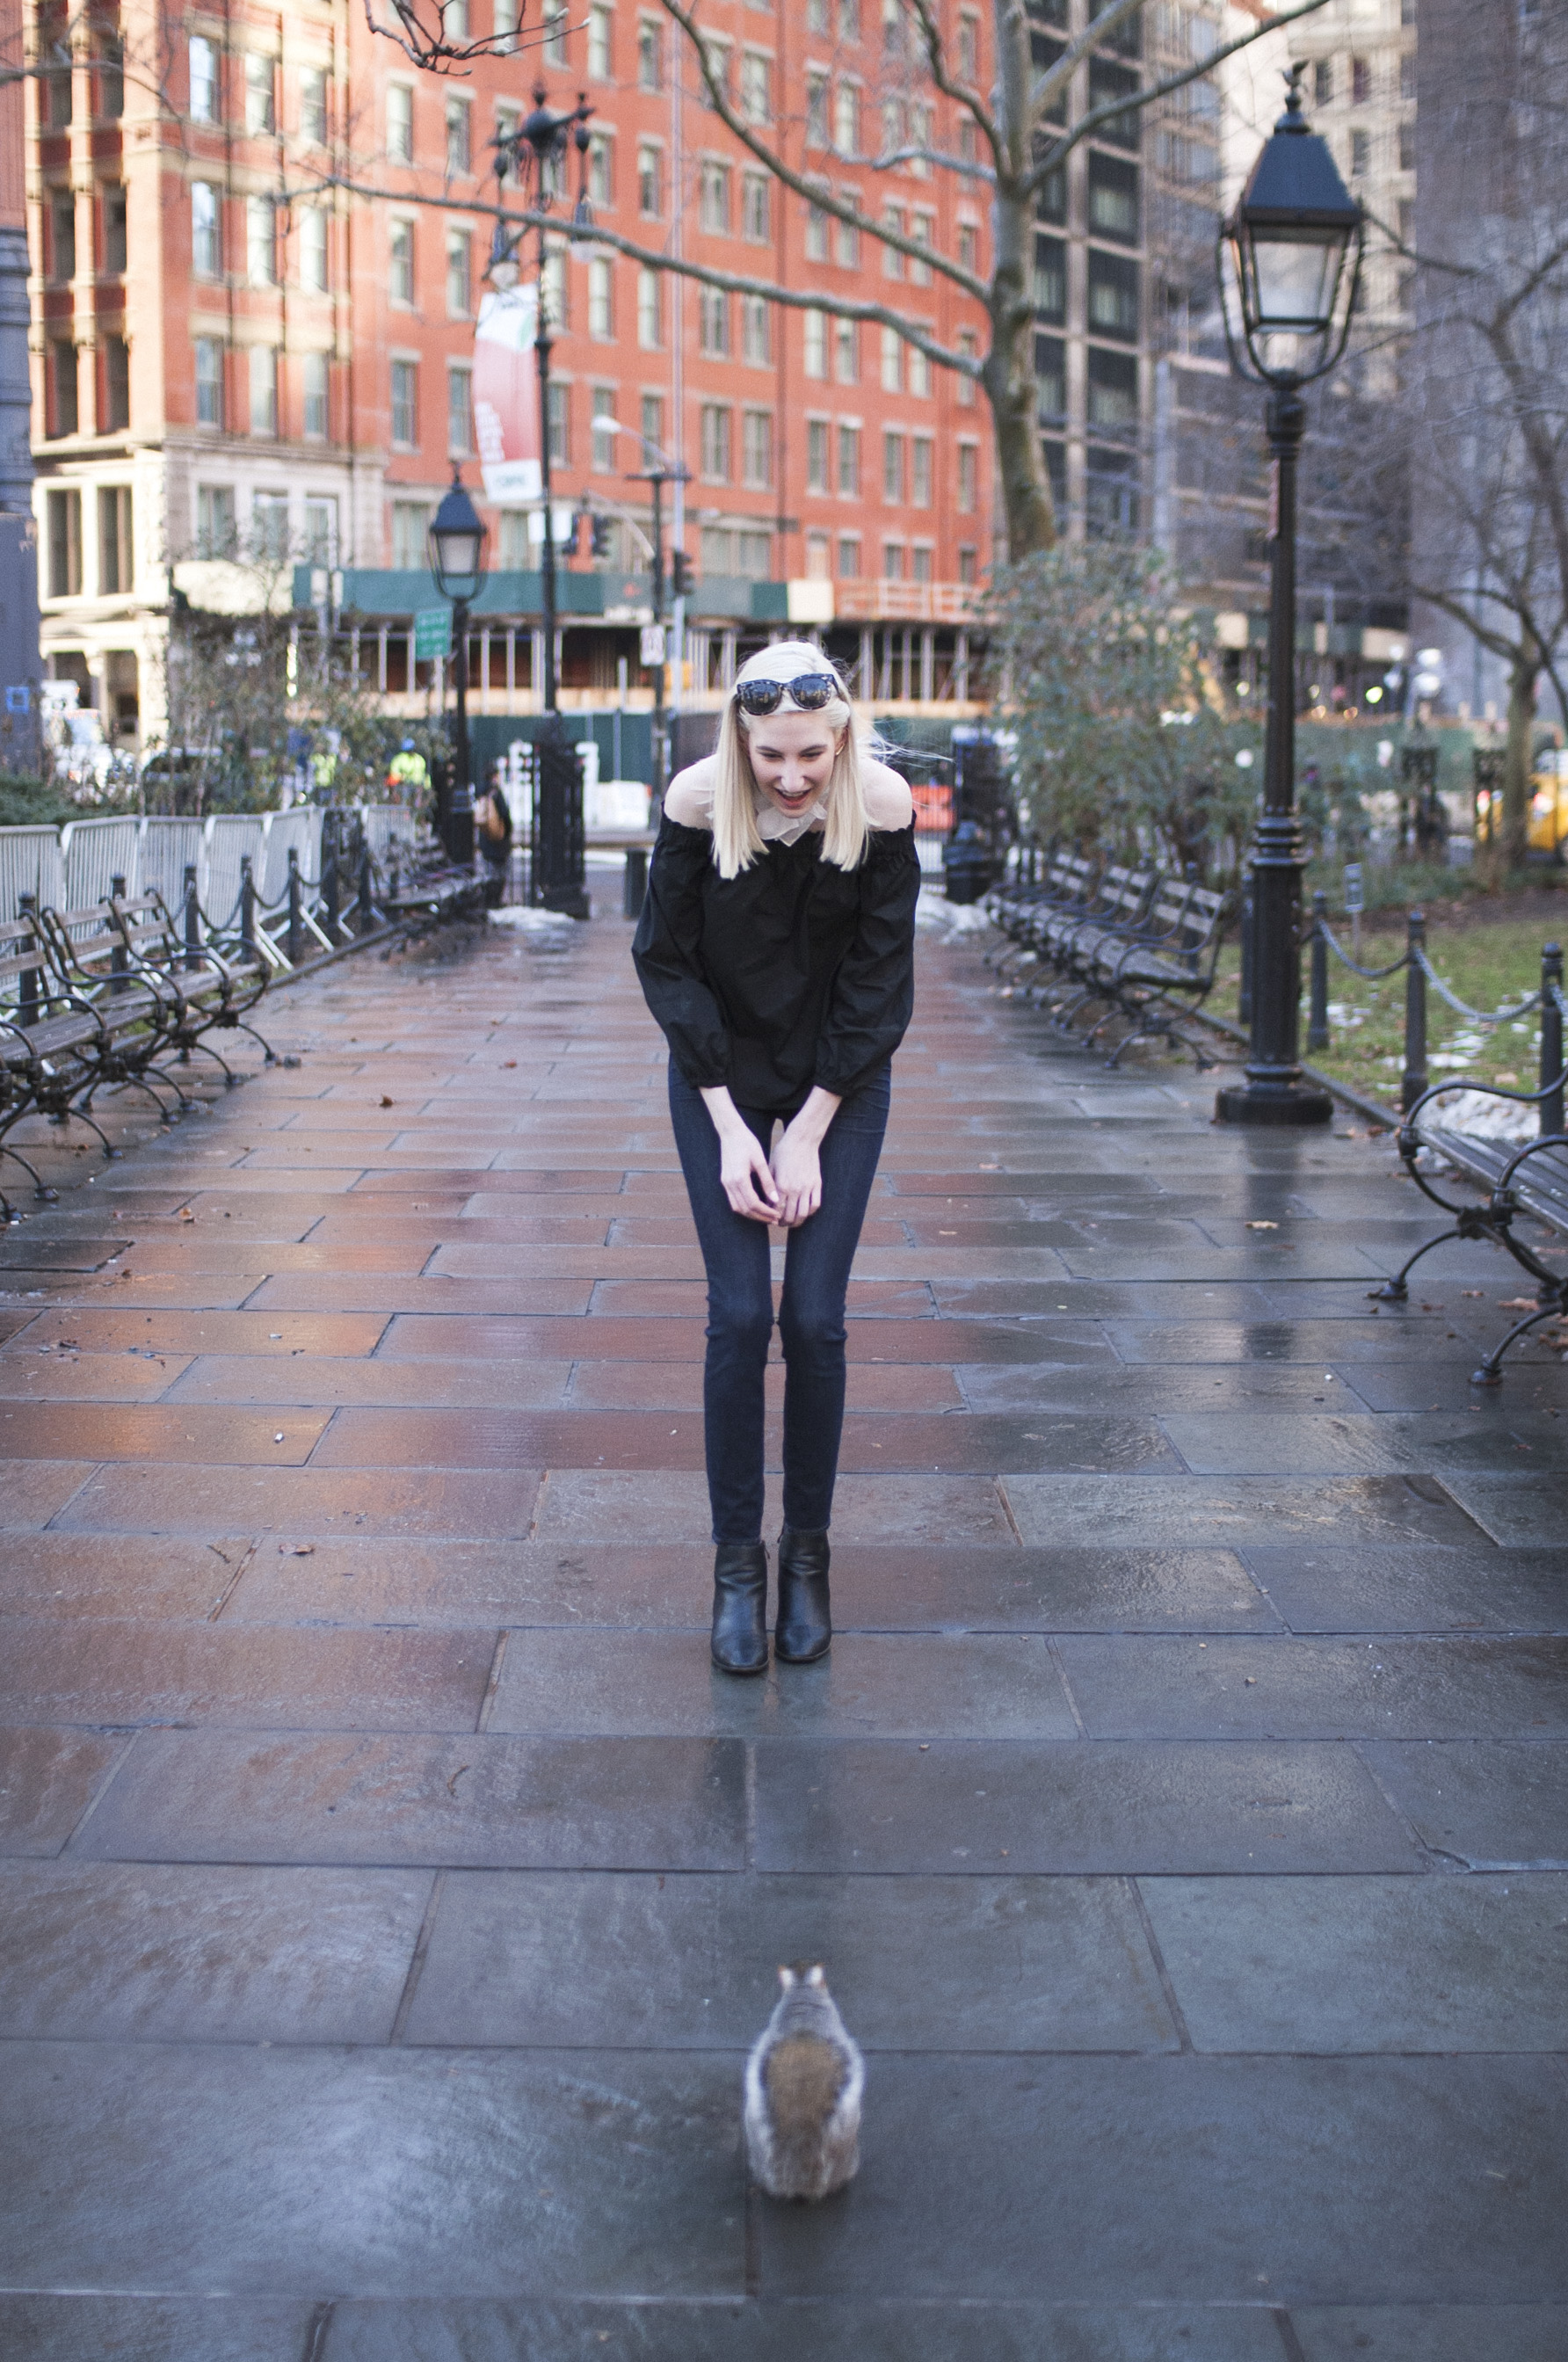 Audra Koch - City Hall Park NYC - J.Crew black longsleeve off the shoulder top, lookout high rise jeans, black block heel ankle boots, white bandana neck scarf, ear crawlers from Rocksbox